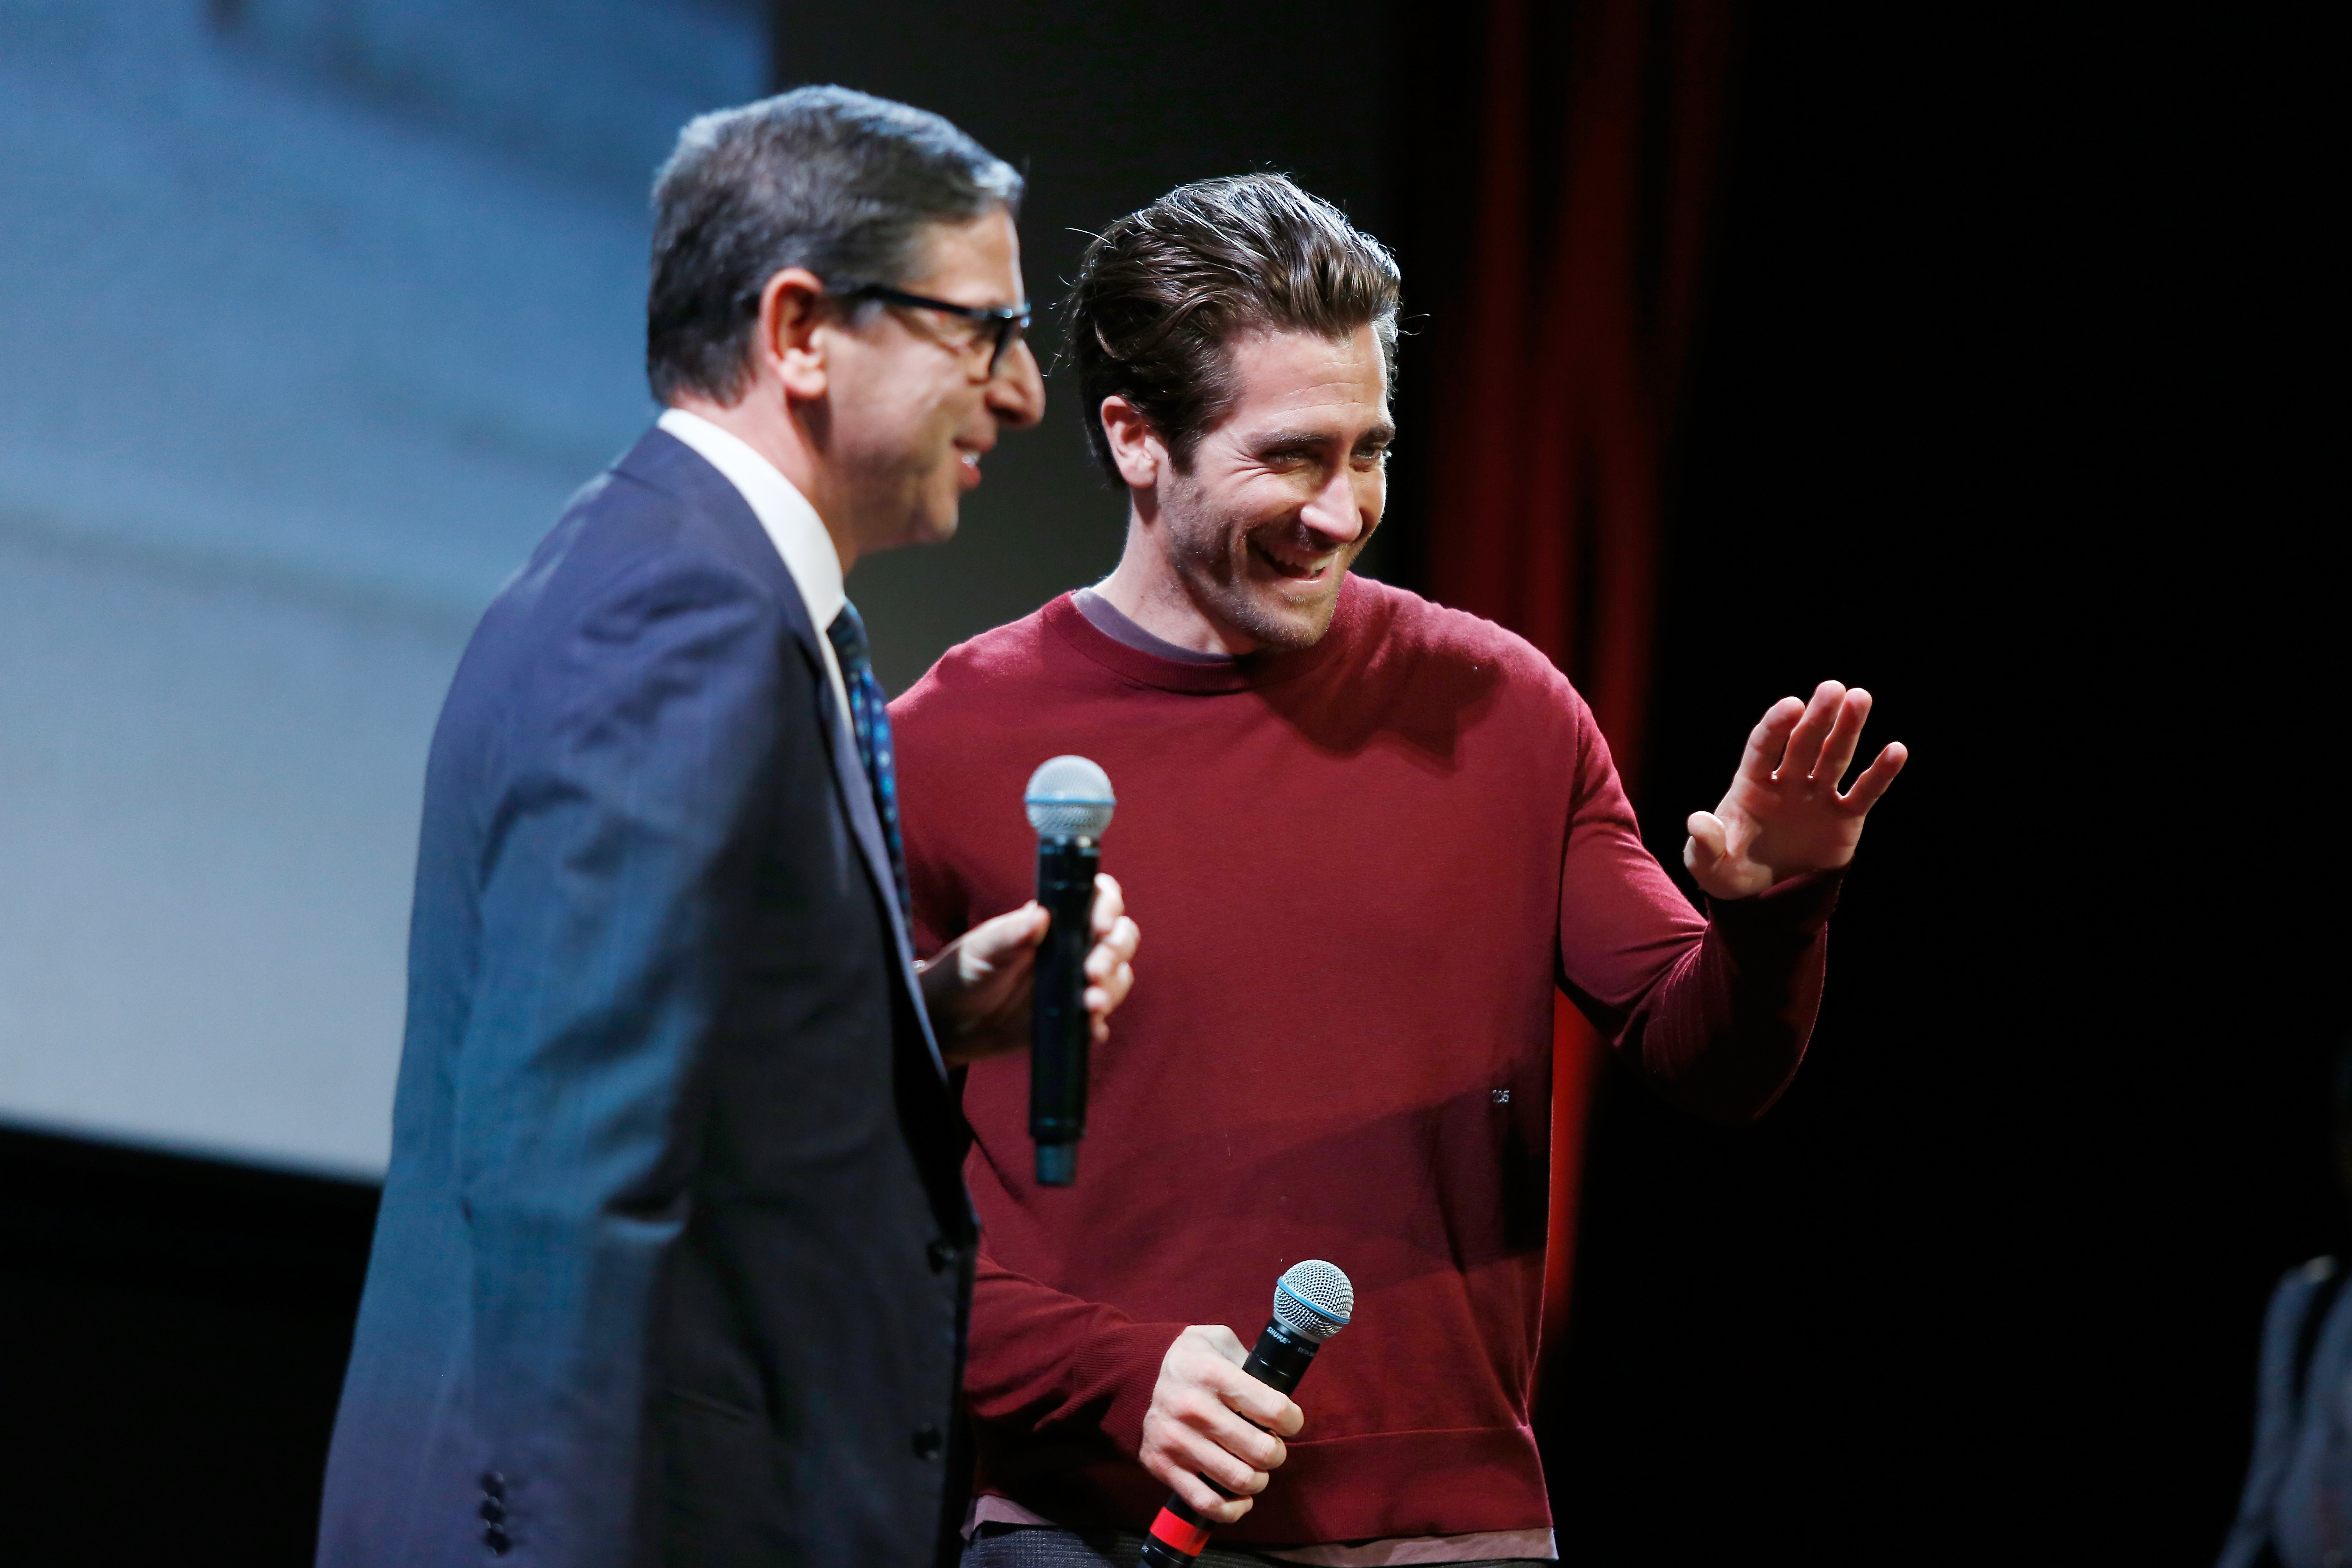 Jake Gyllenhaal meets the audience during the 12th Rome Film Fest at Auditorium Parco Della Musica on October 29, 2017 in Rome, Italy.